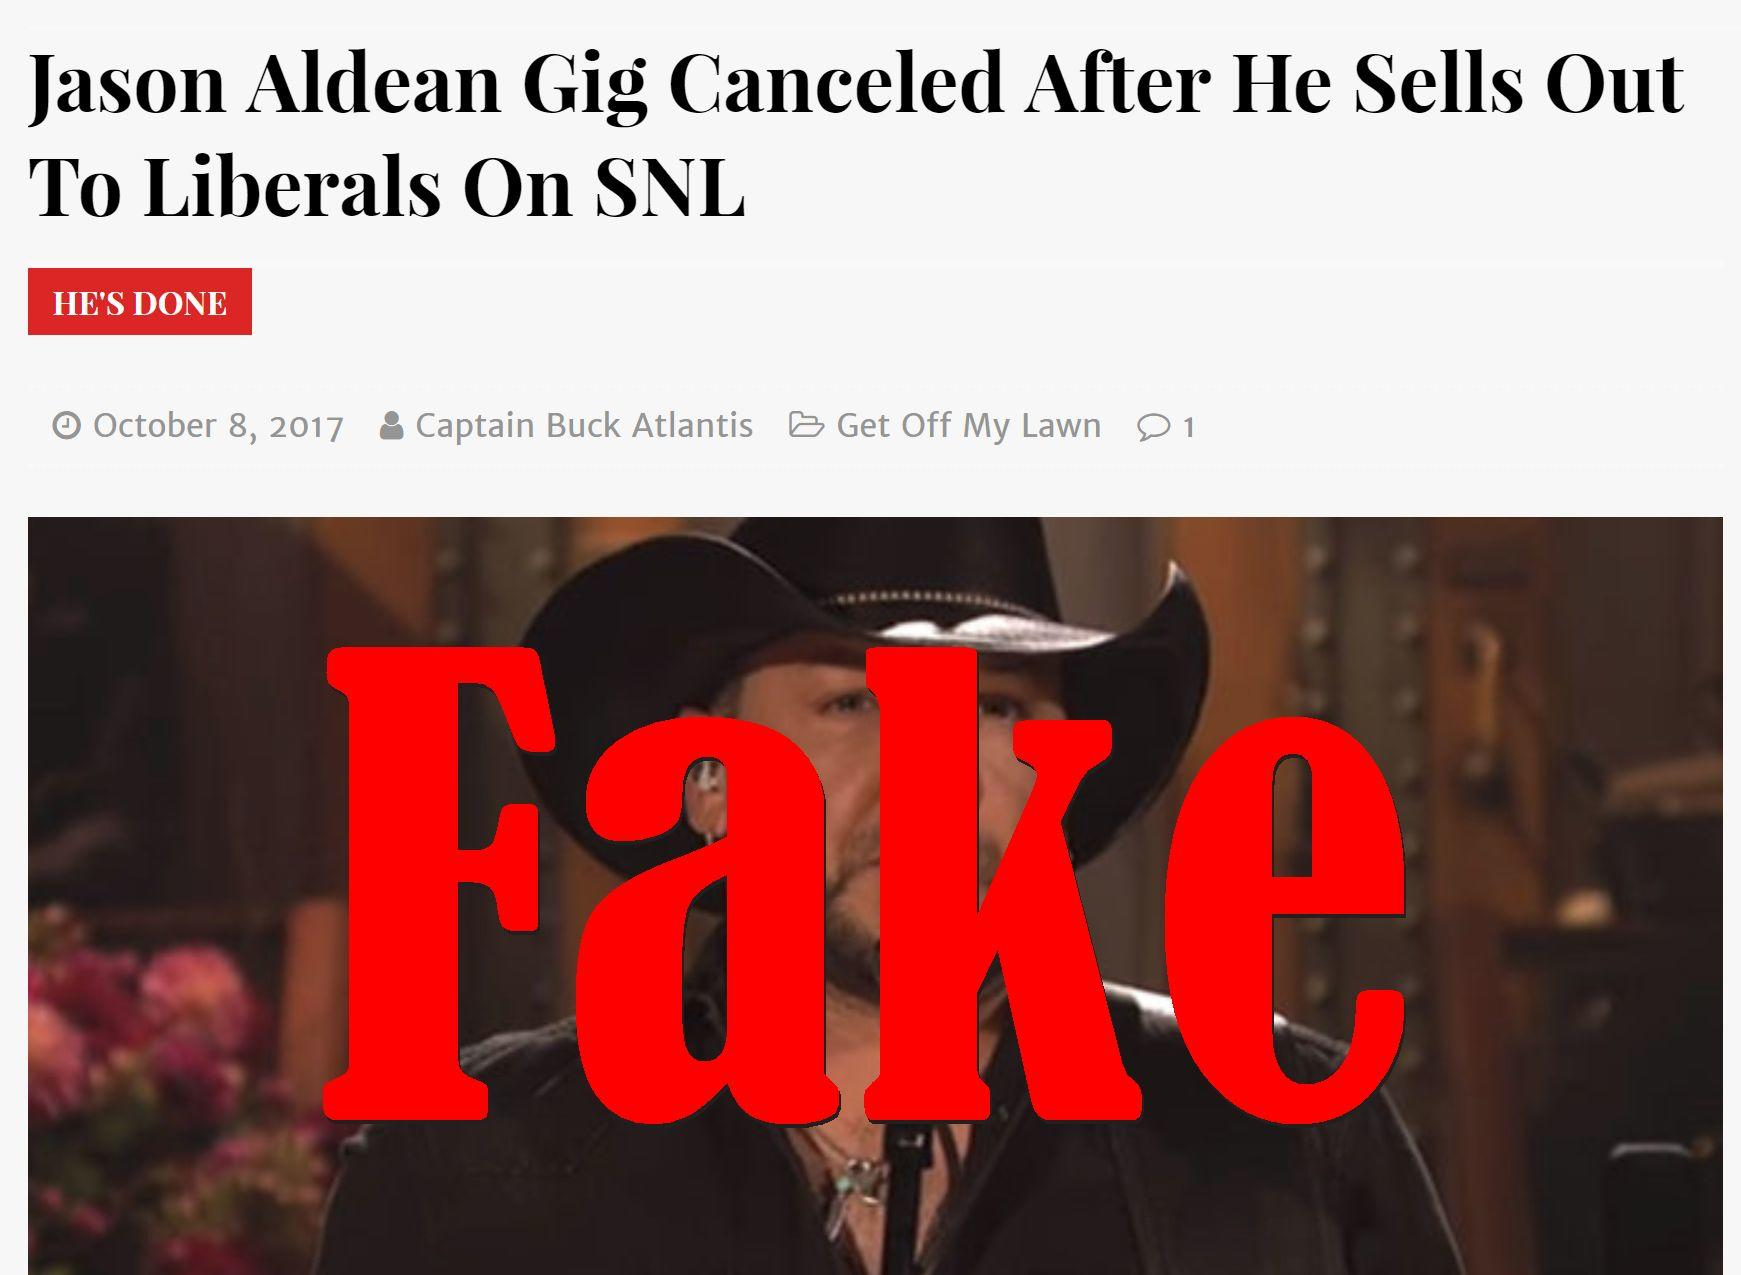 Fake News: Jason Aldean Gig NOT Canceled After He Sells Out To Liberals On SNL